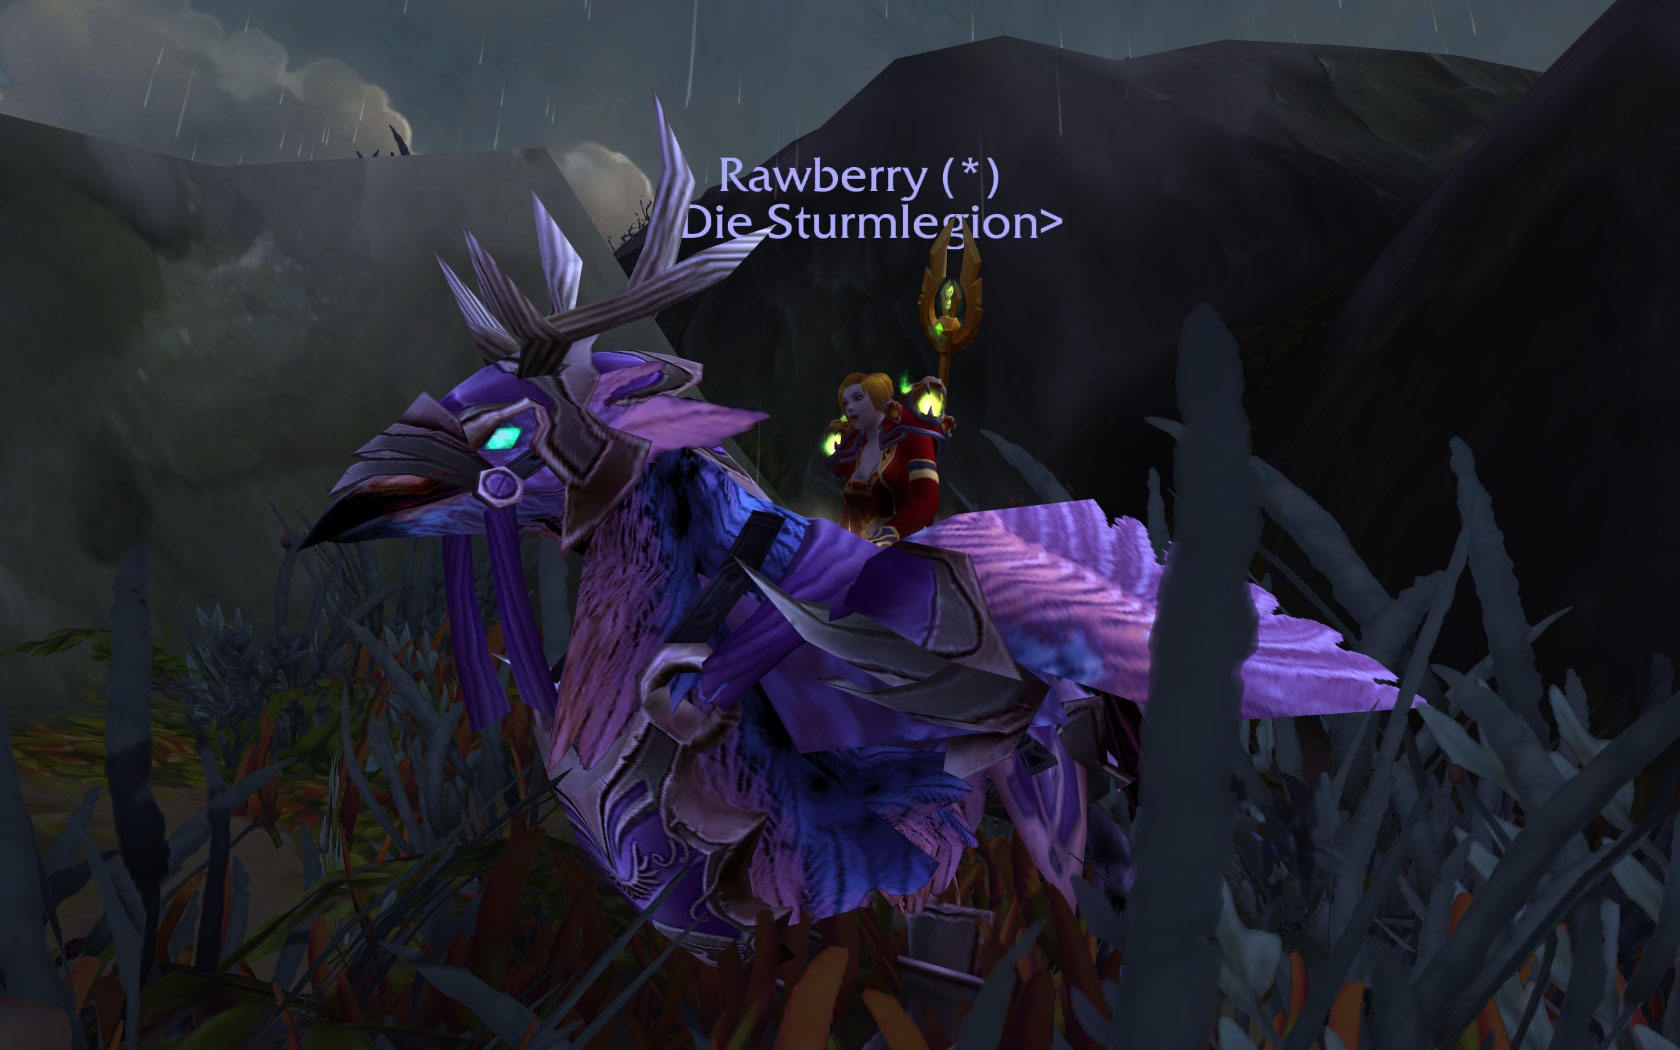 World of Warcraft's most sought-after mount, the Long-Forgotten Hippogryph, has been found